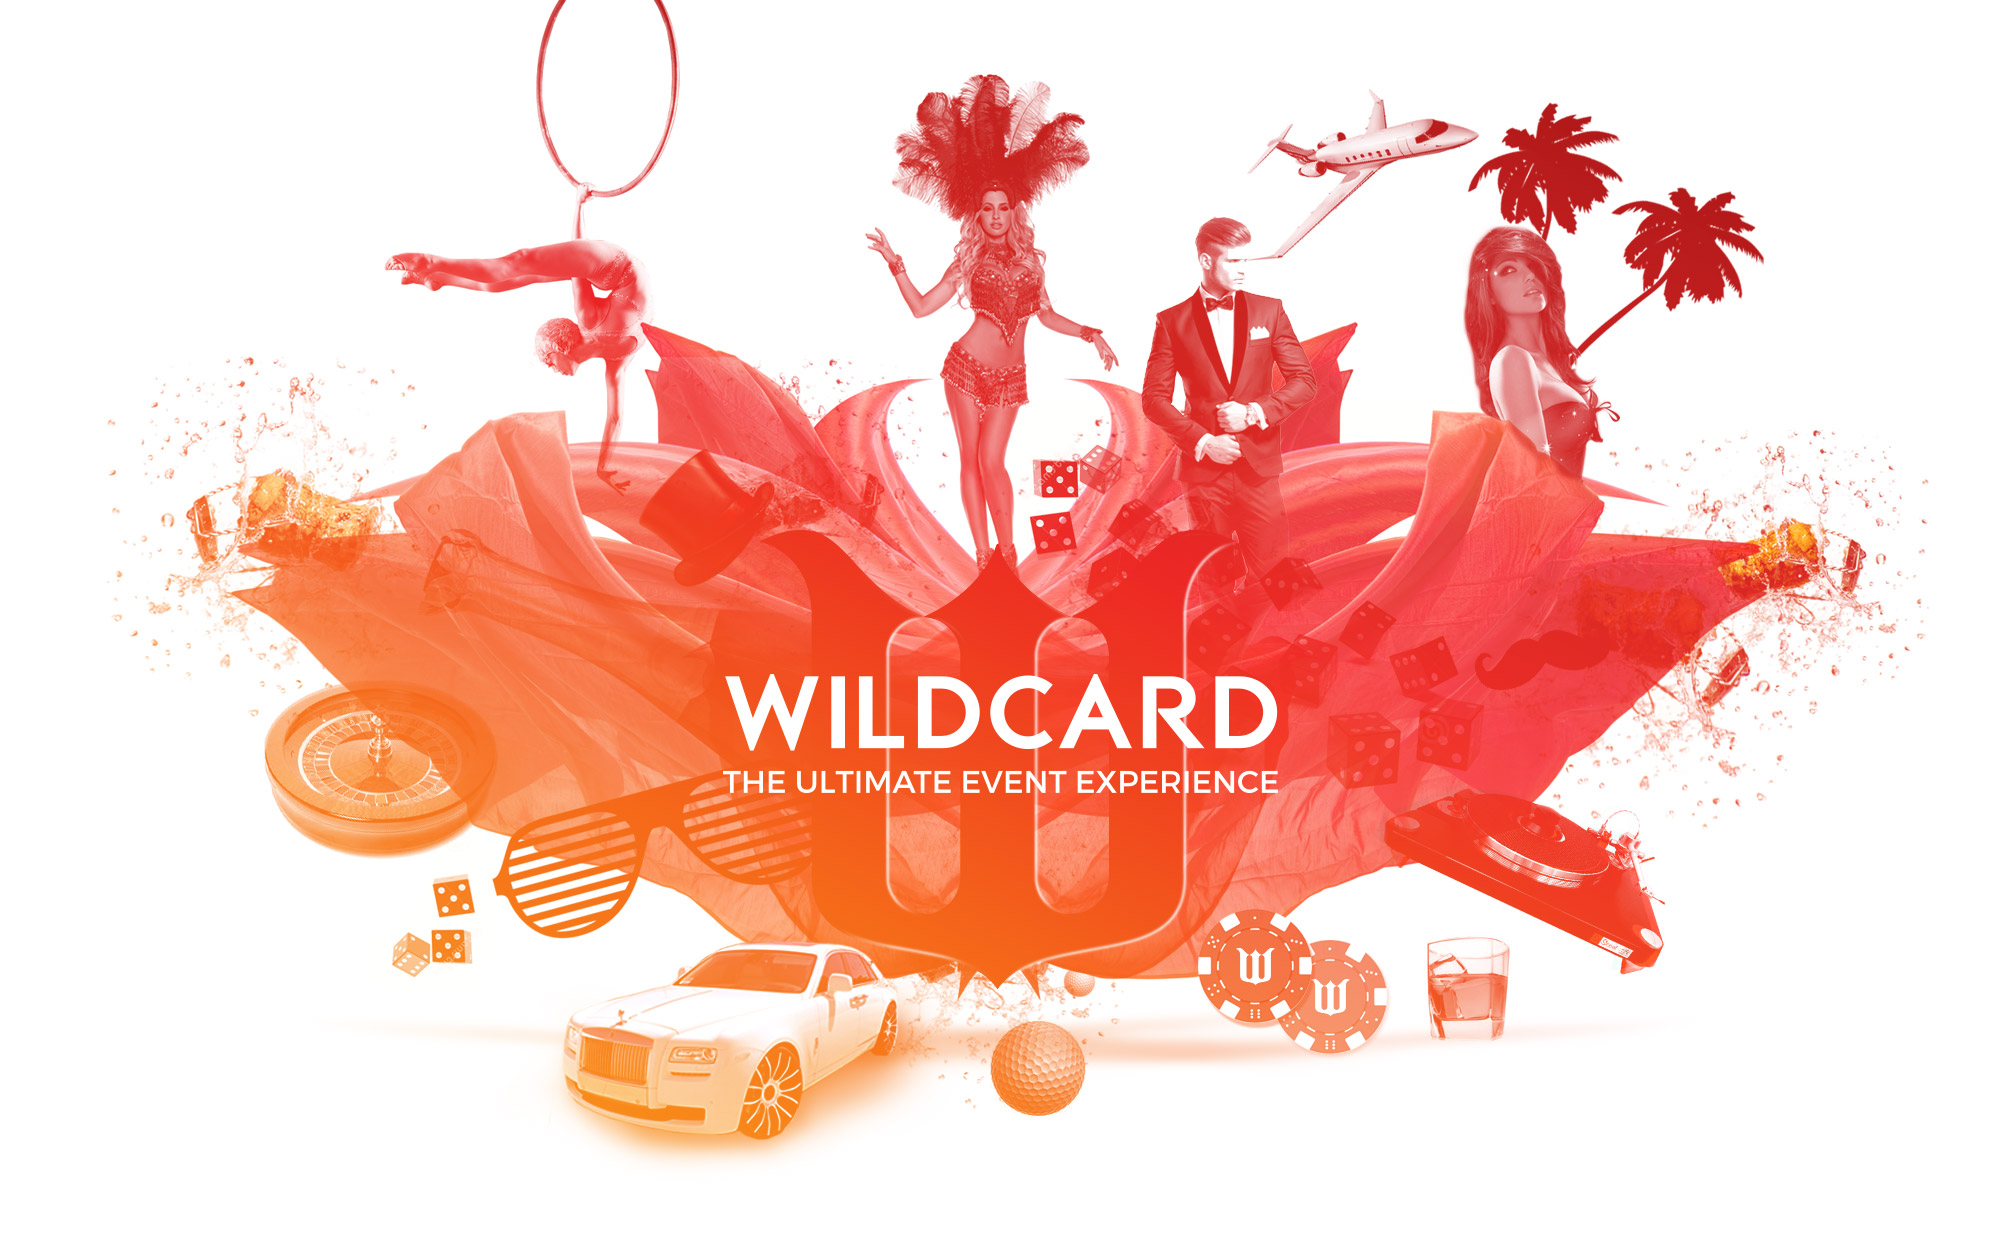 Wildcard event experience